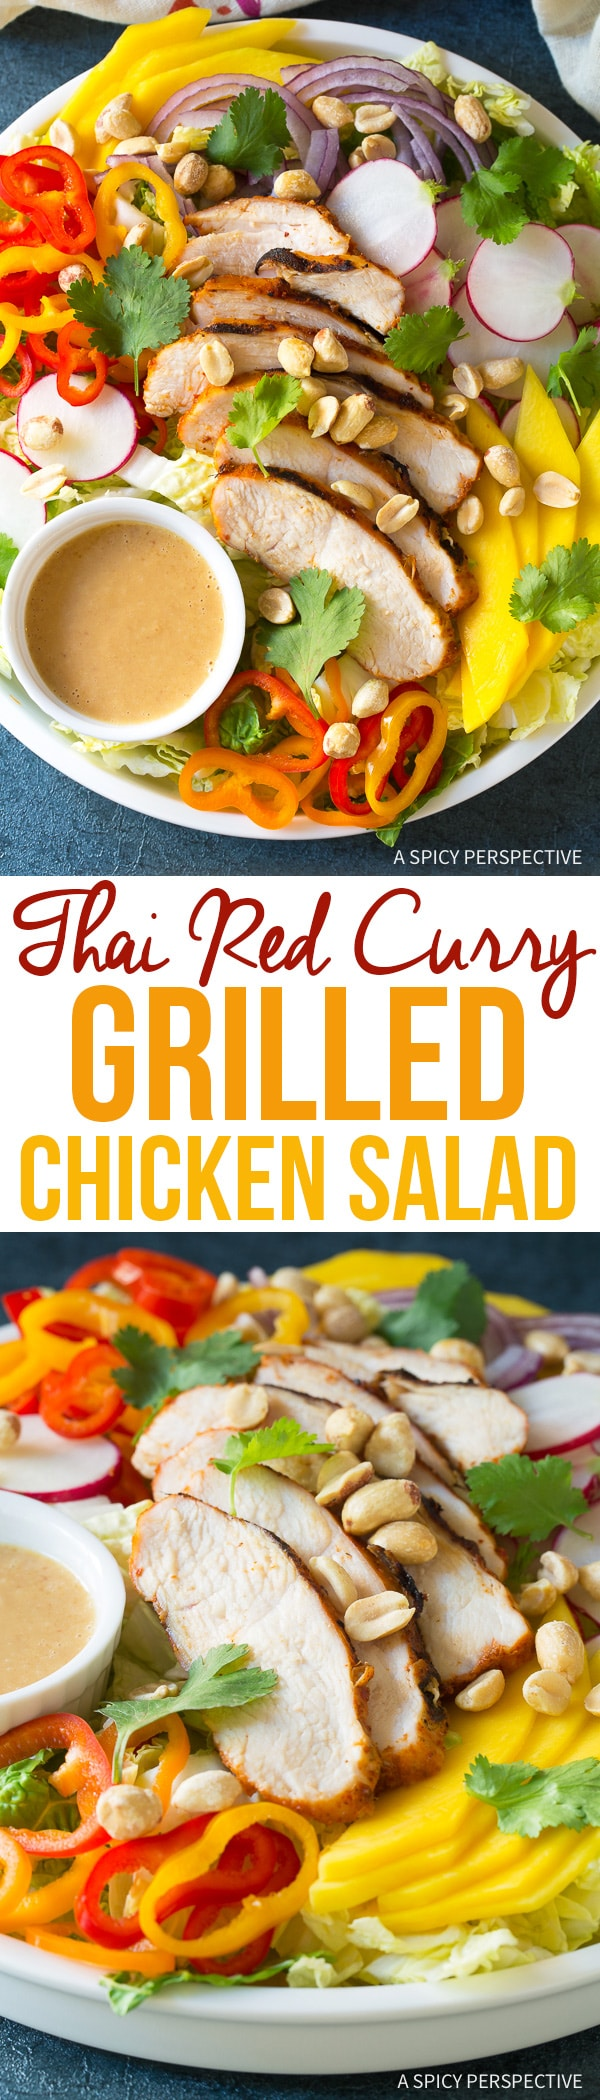 Perfect Thai Red Curry Grilled Chicken Salad Recipe